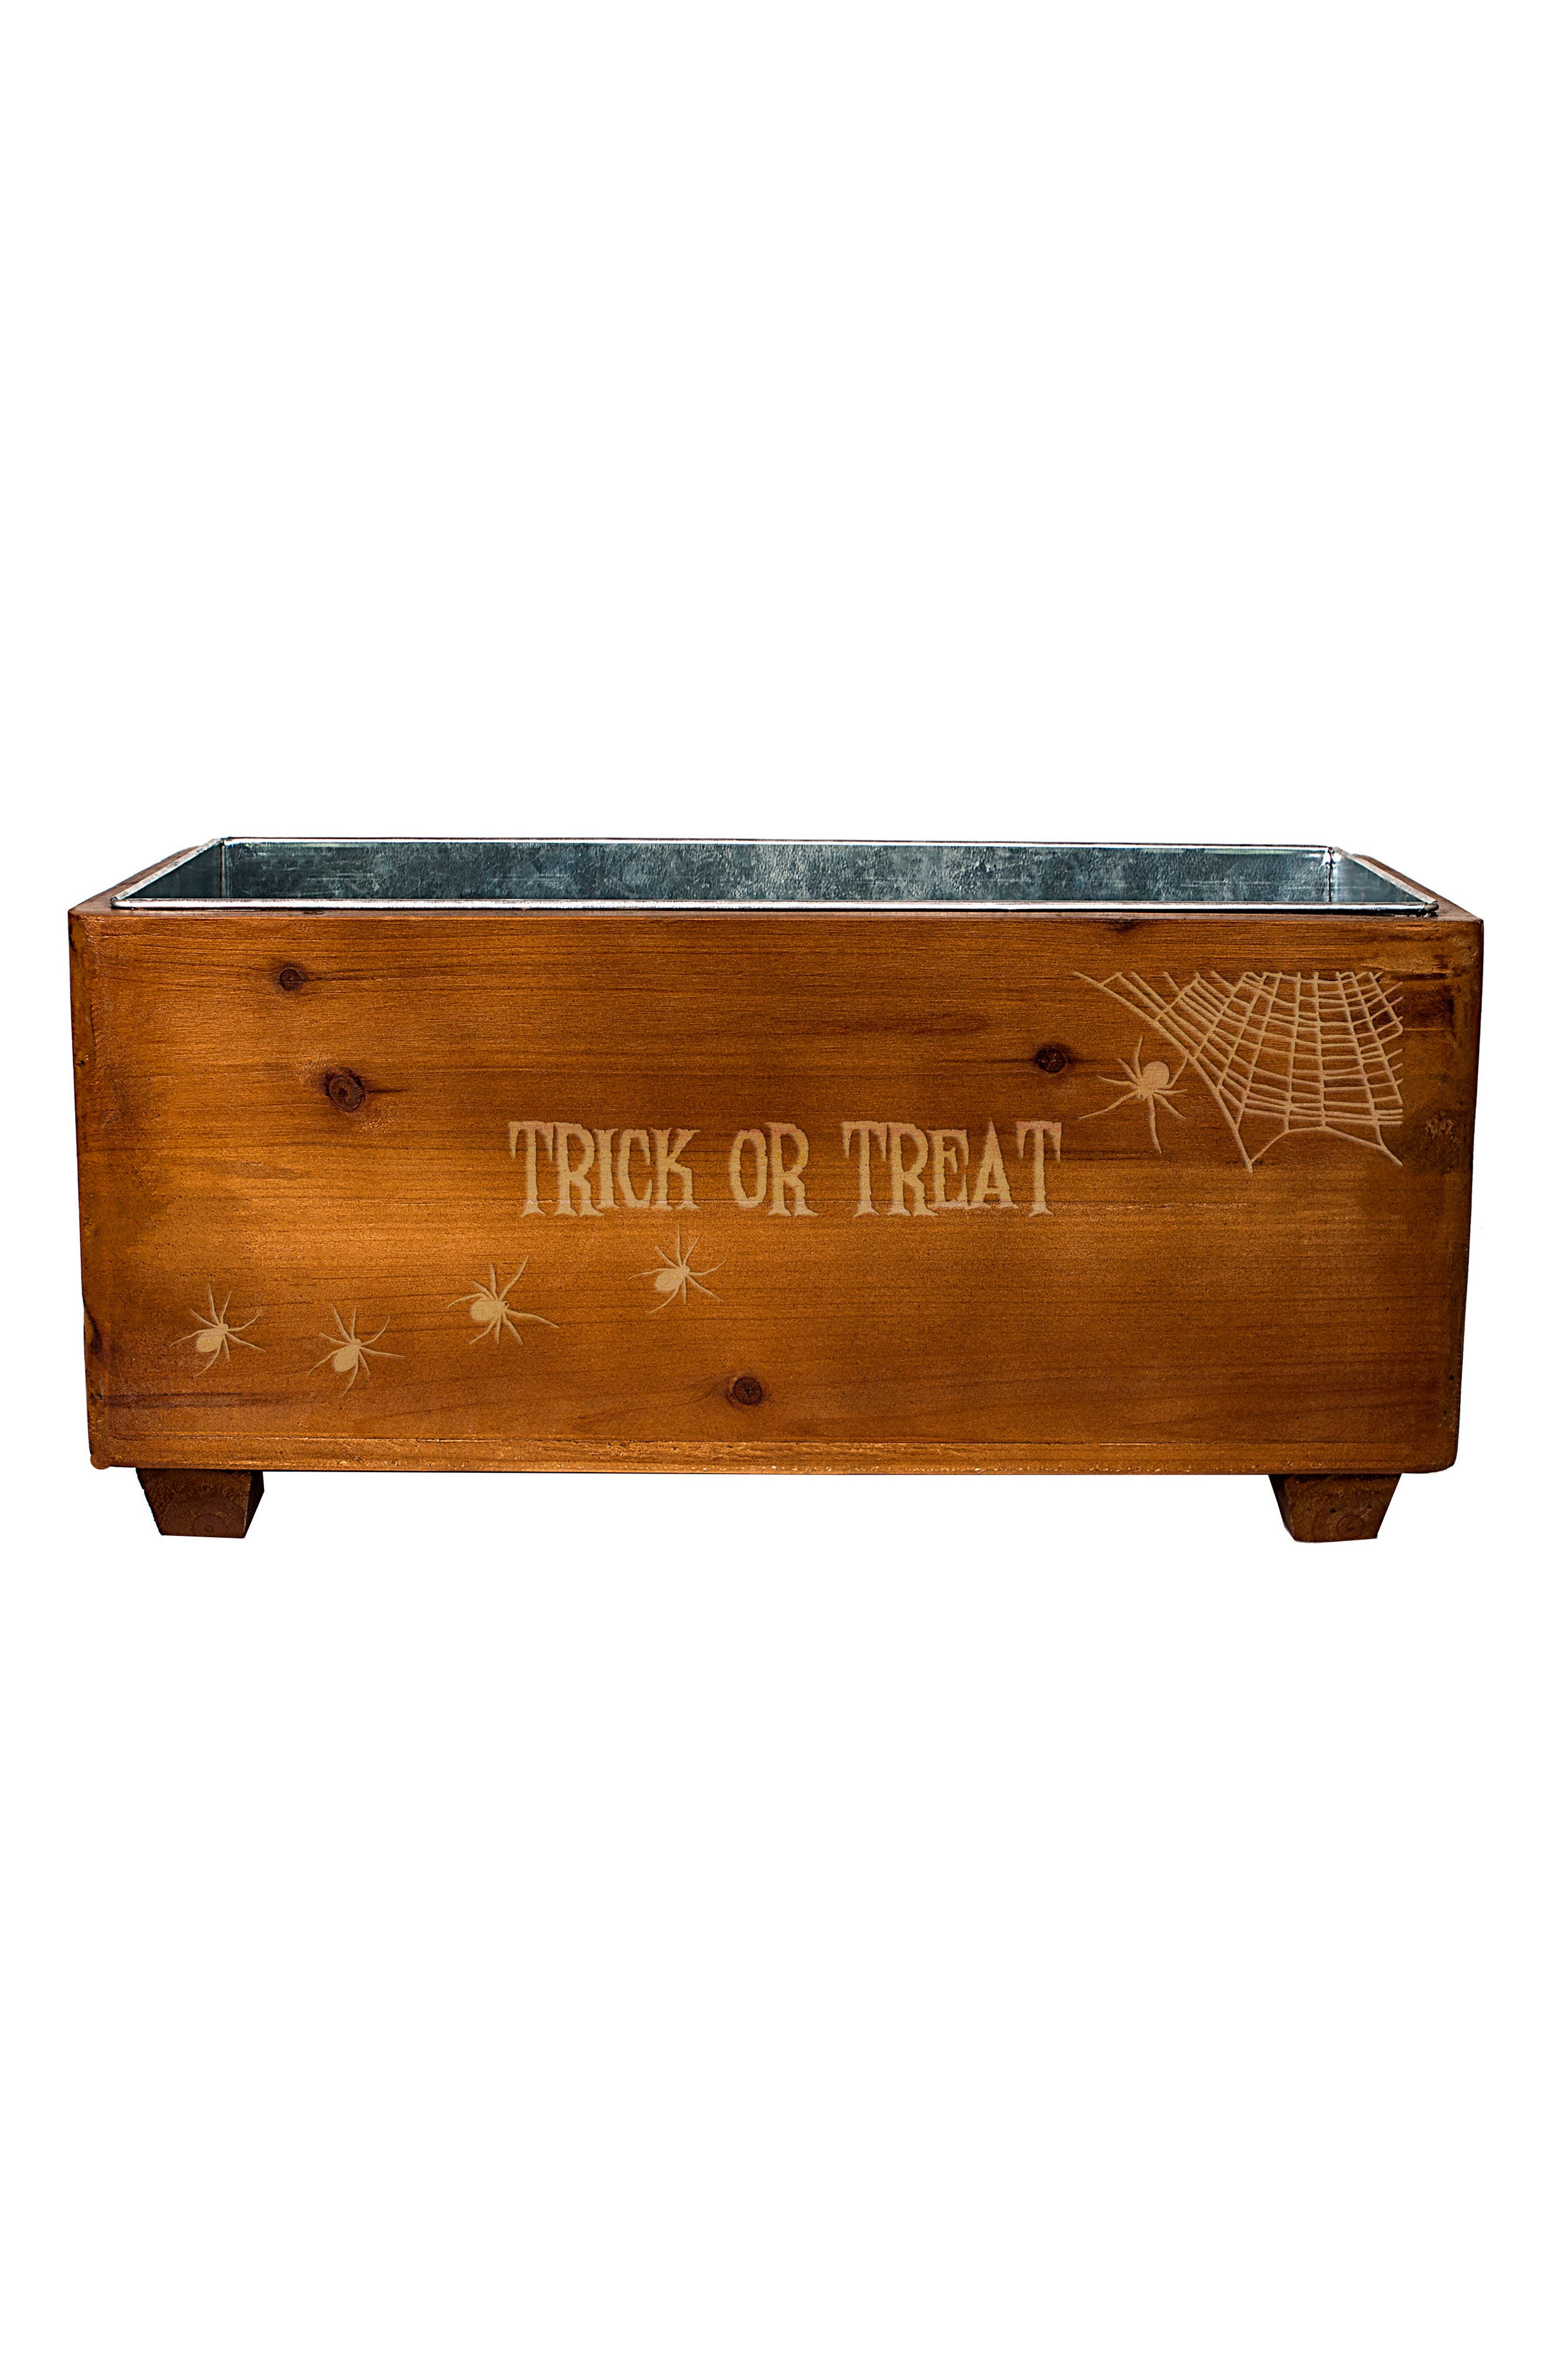 Cathy's Concepts Trick or Treat Wood Wine Trough